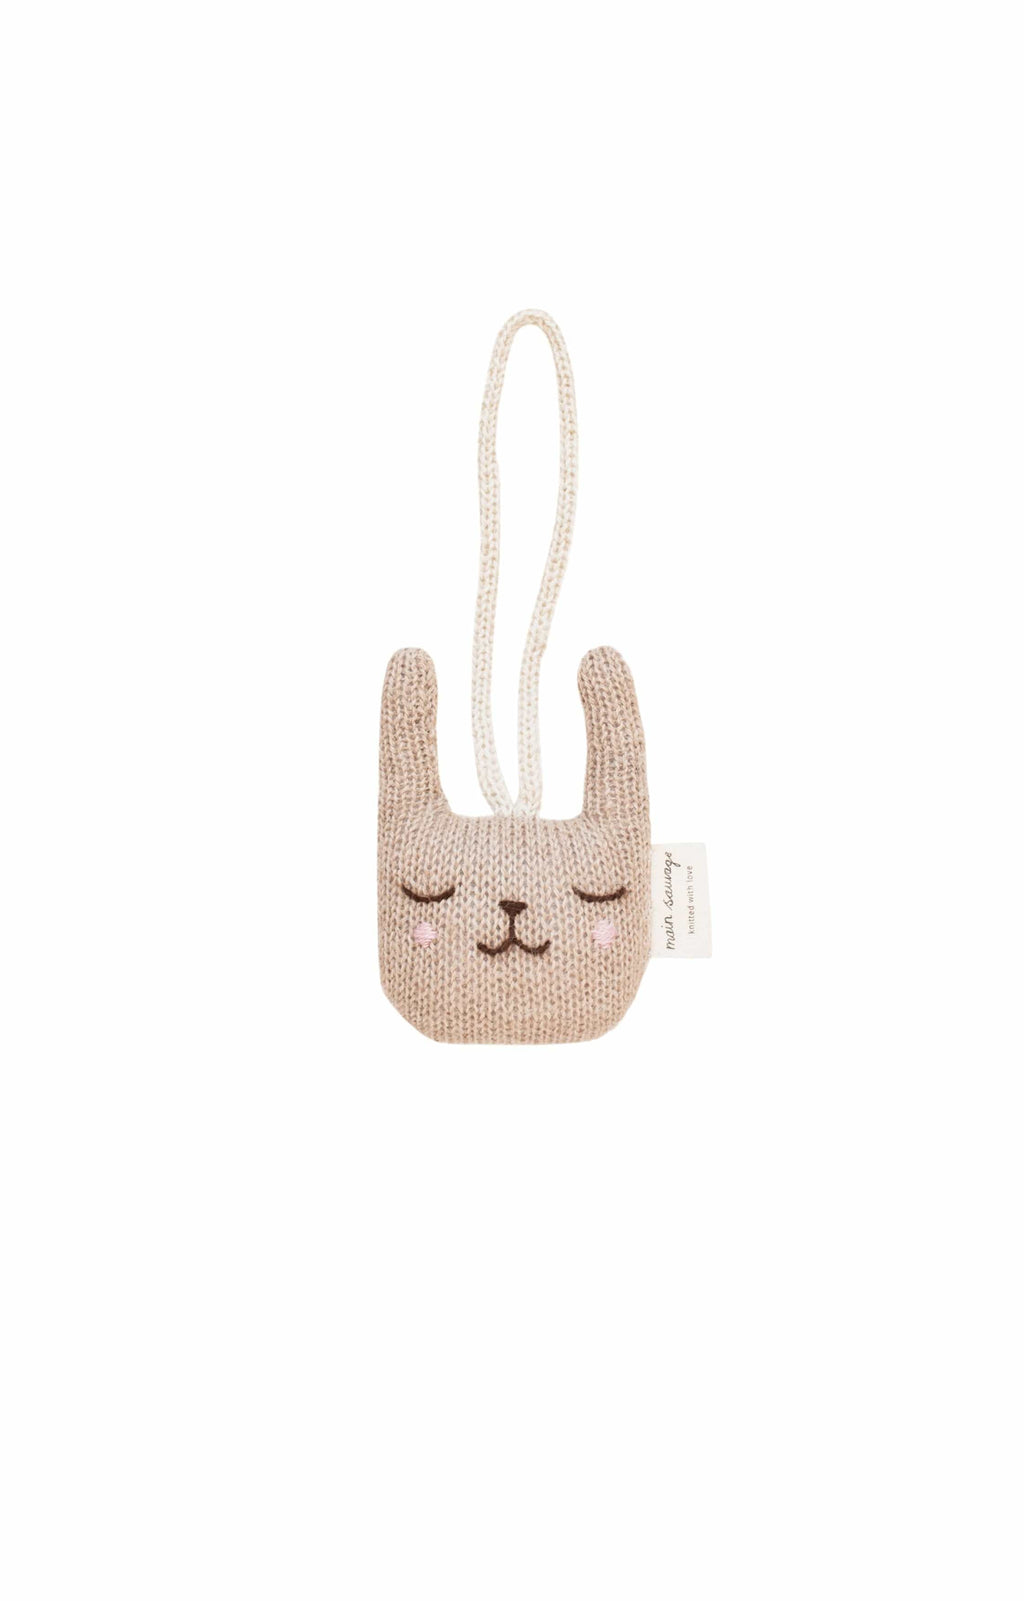 Main Sauvage rabbit hanging rattle (PRE-ORDER NOV) - Hello Little Birdie